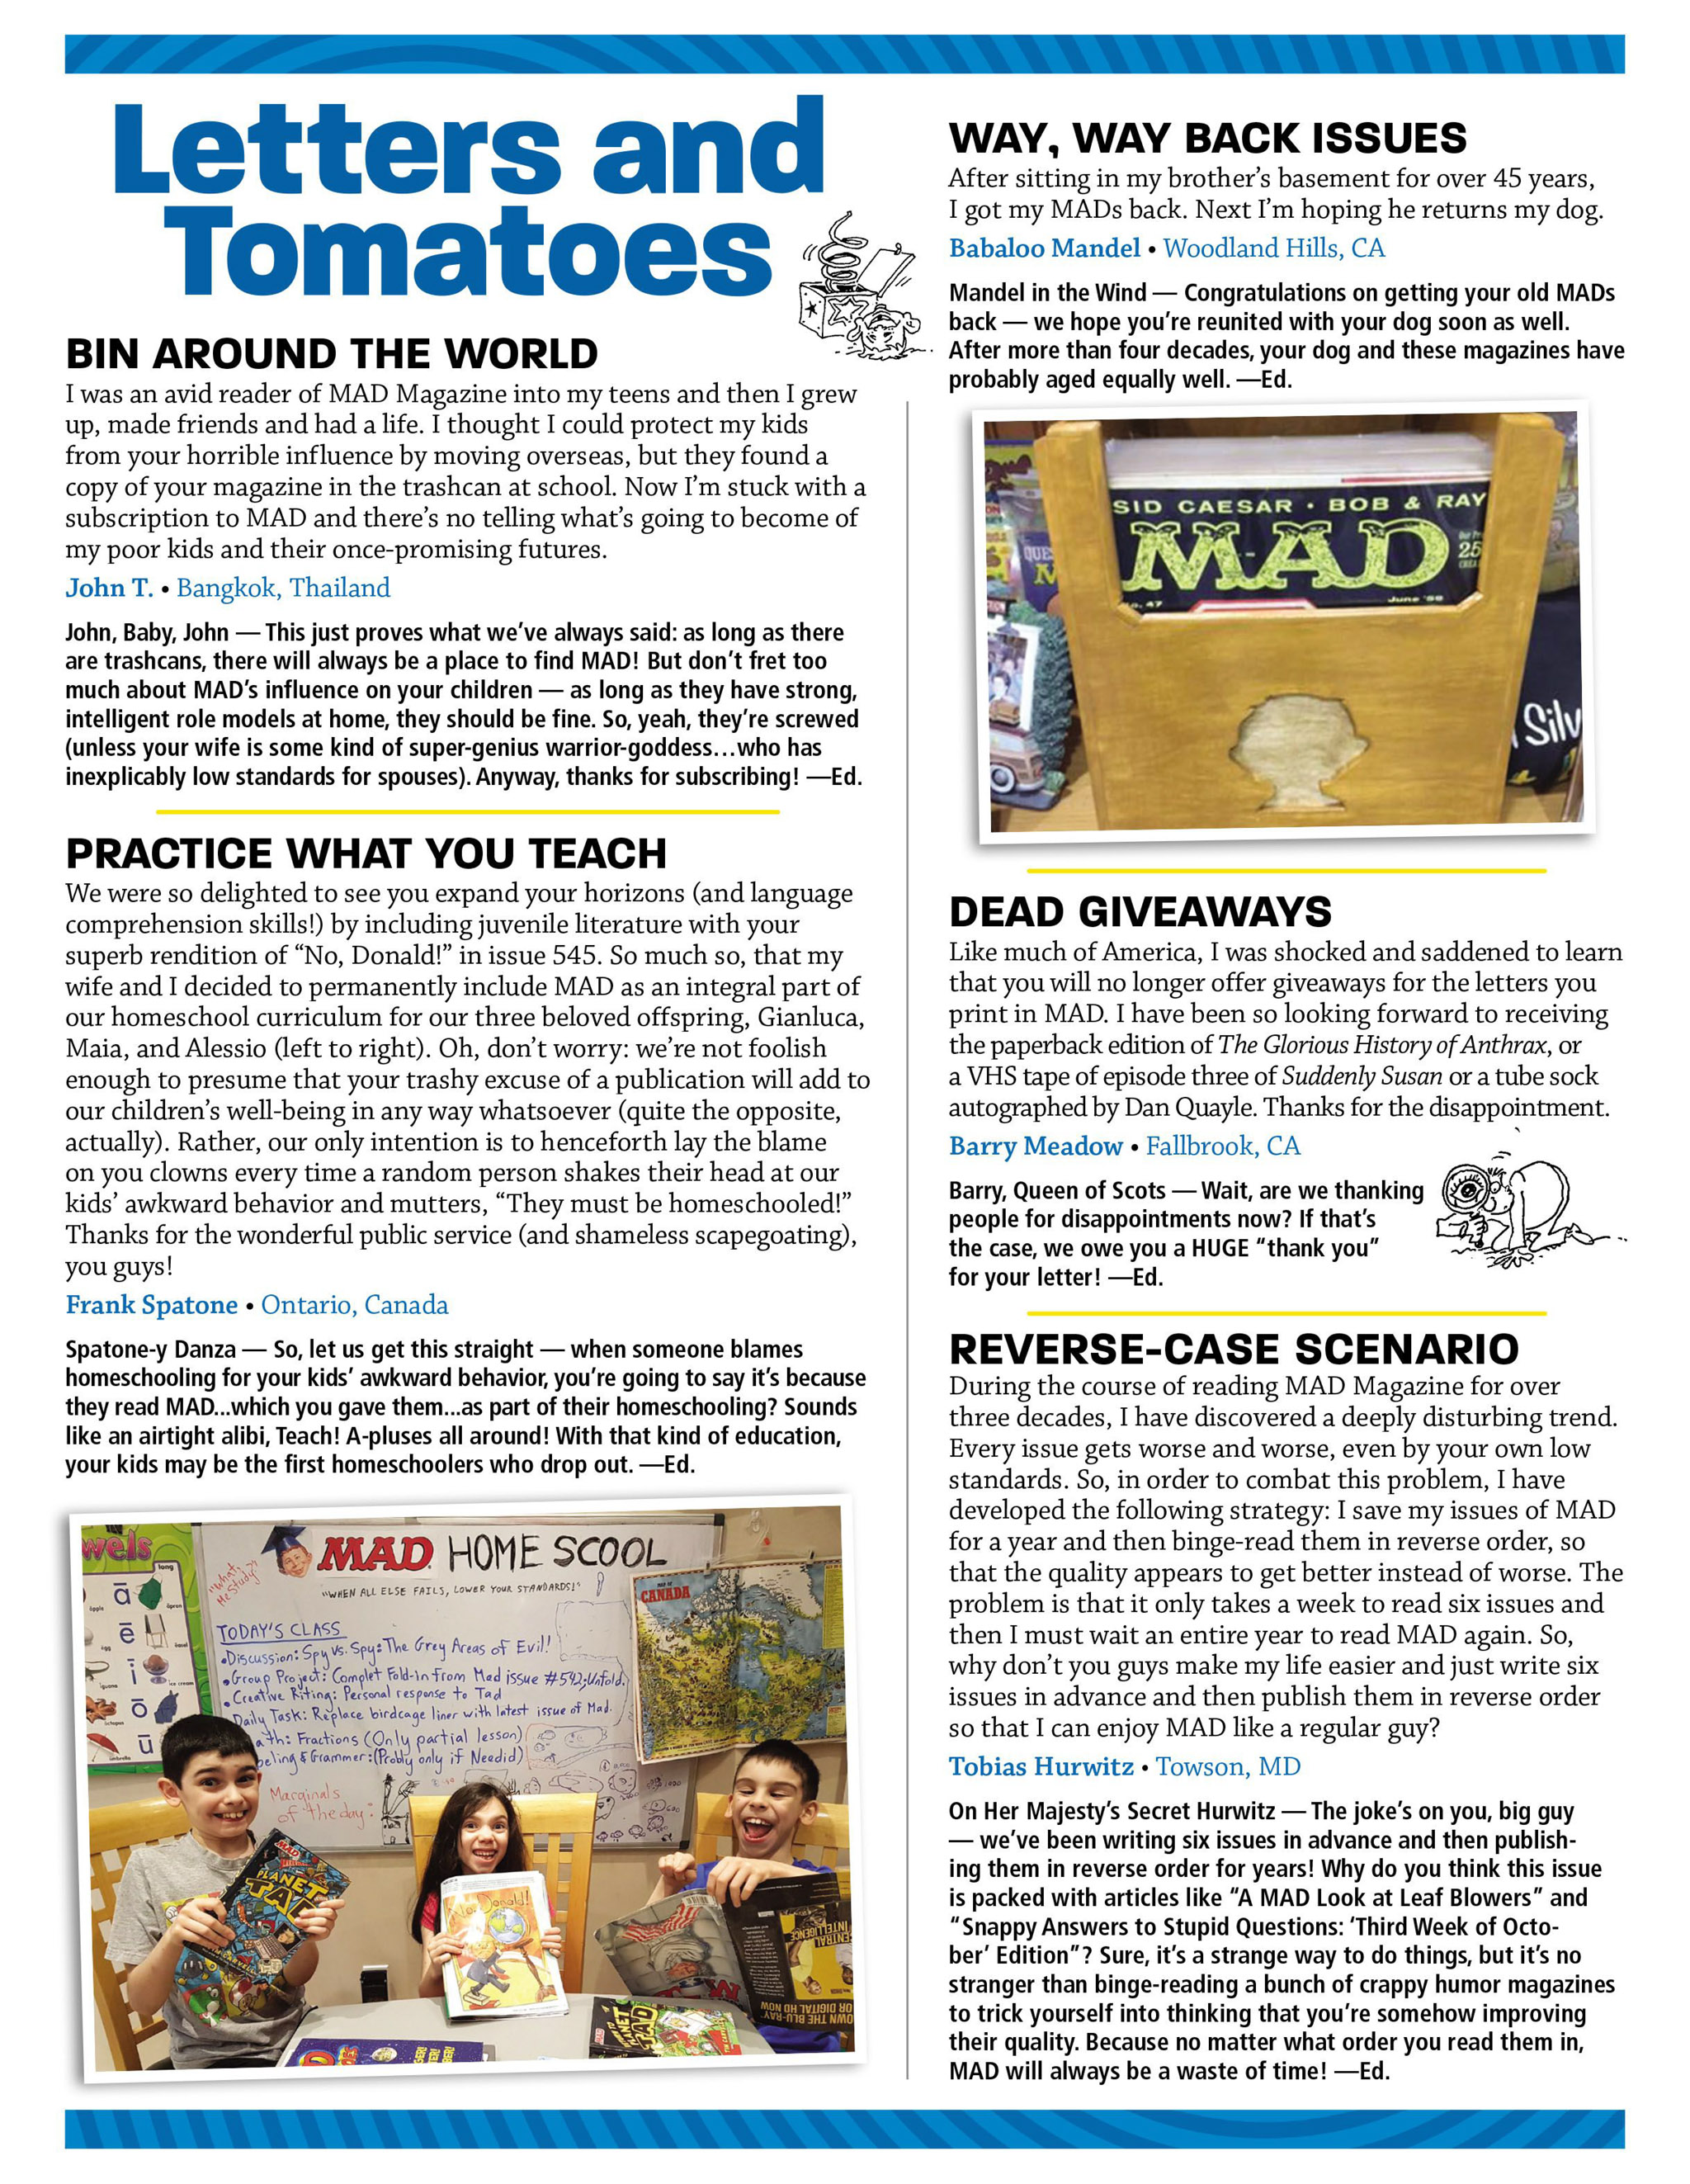 Read online MAD comic -  Issue #546 - 4